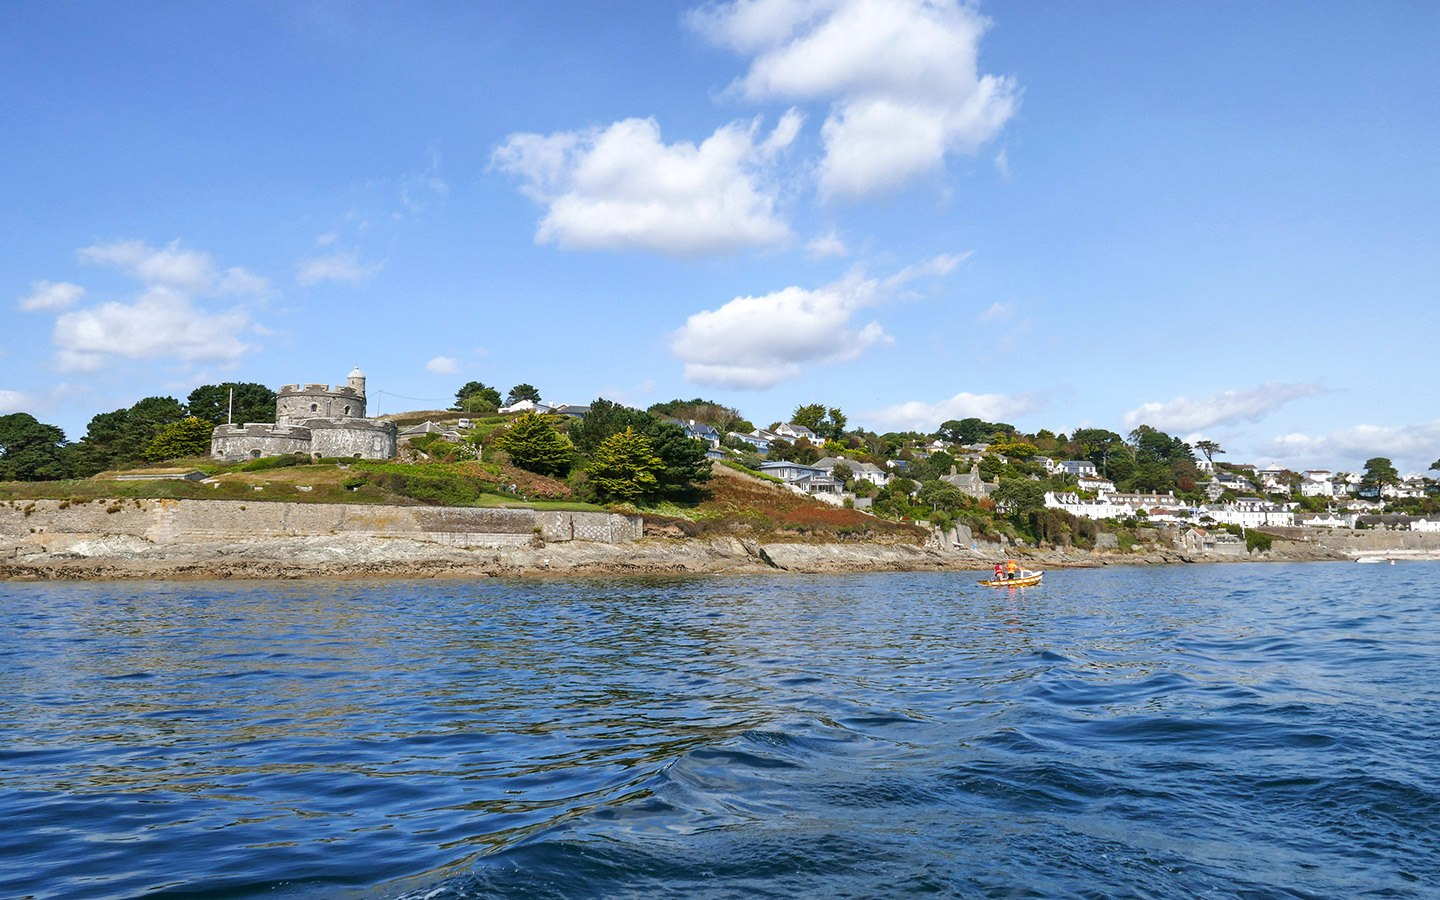 St Mawes Castle and coastline